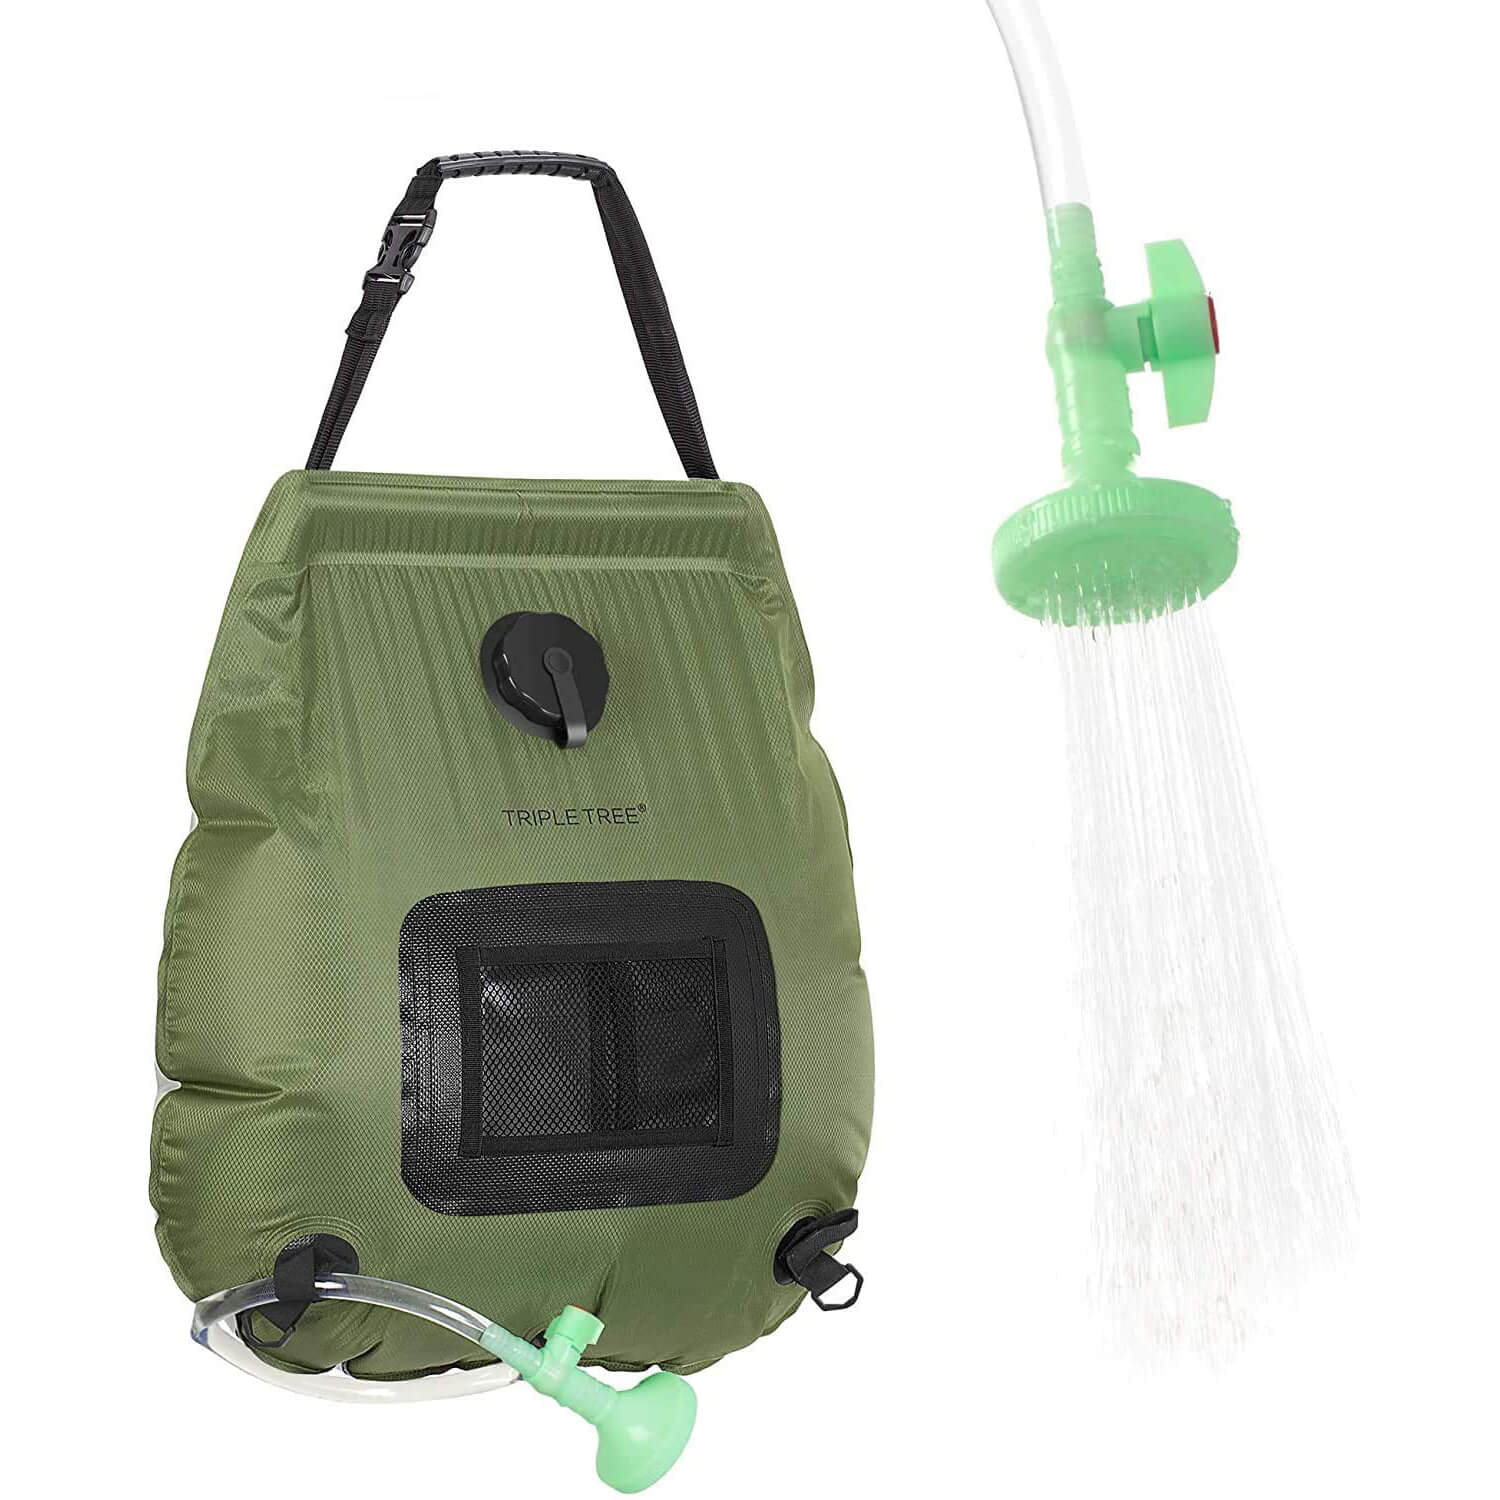 TripleTree Camping Solar Shower Bag